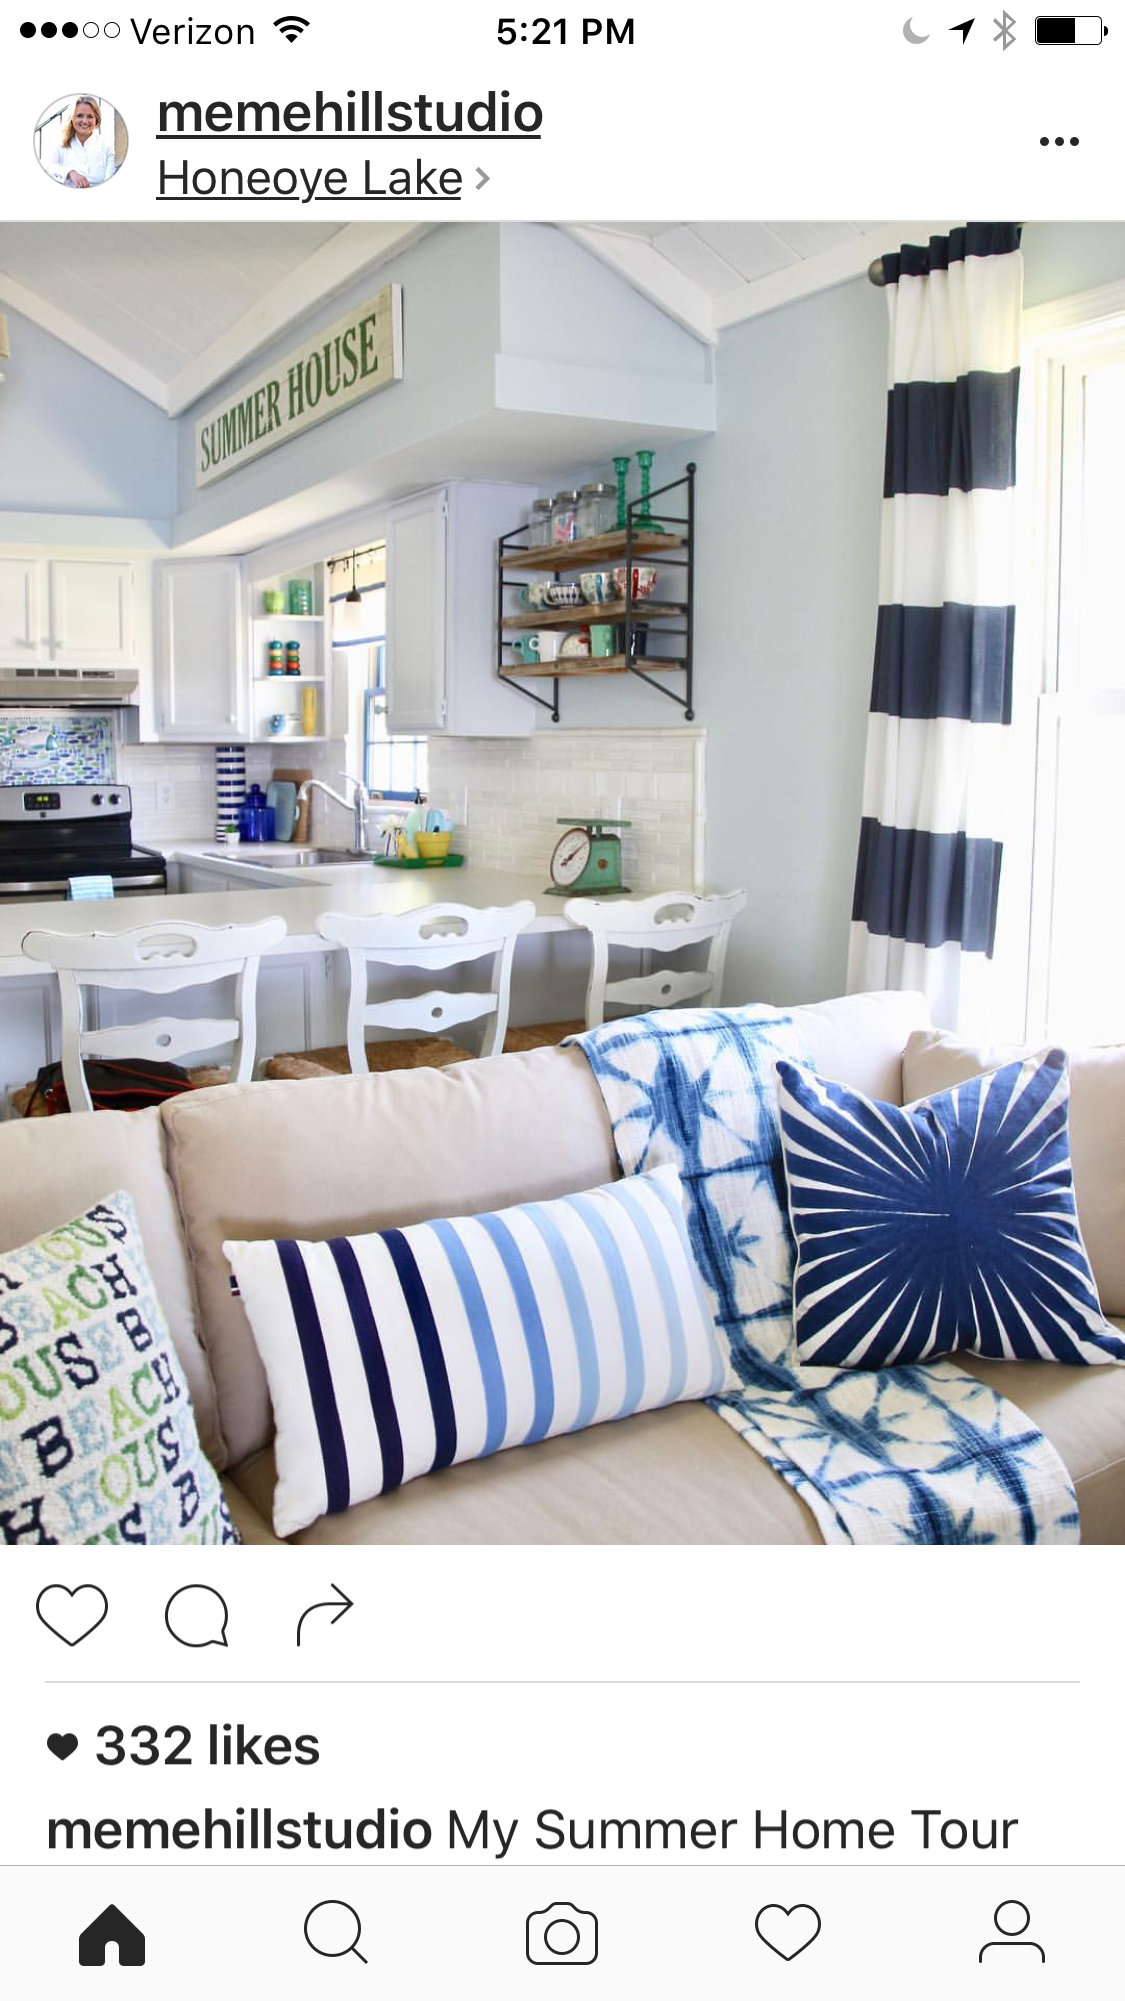 Pin By Susana Bonazzola On Paredes Y Colores Pinterest Coastal Cottage Decorating And Decor